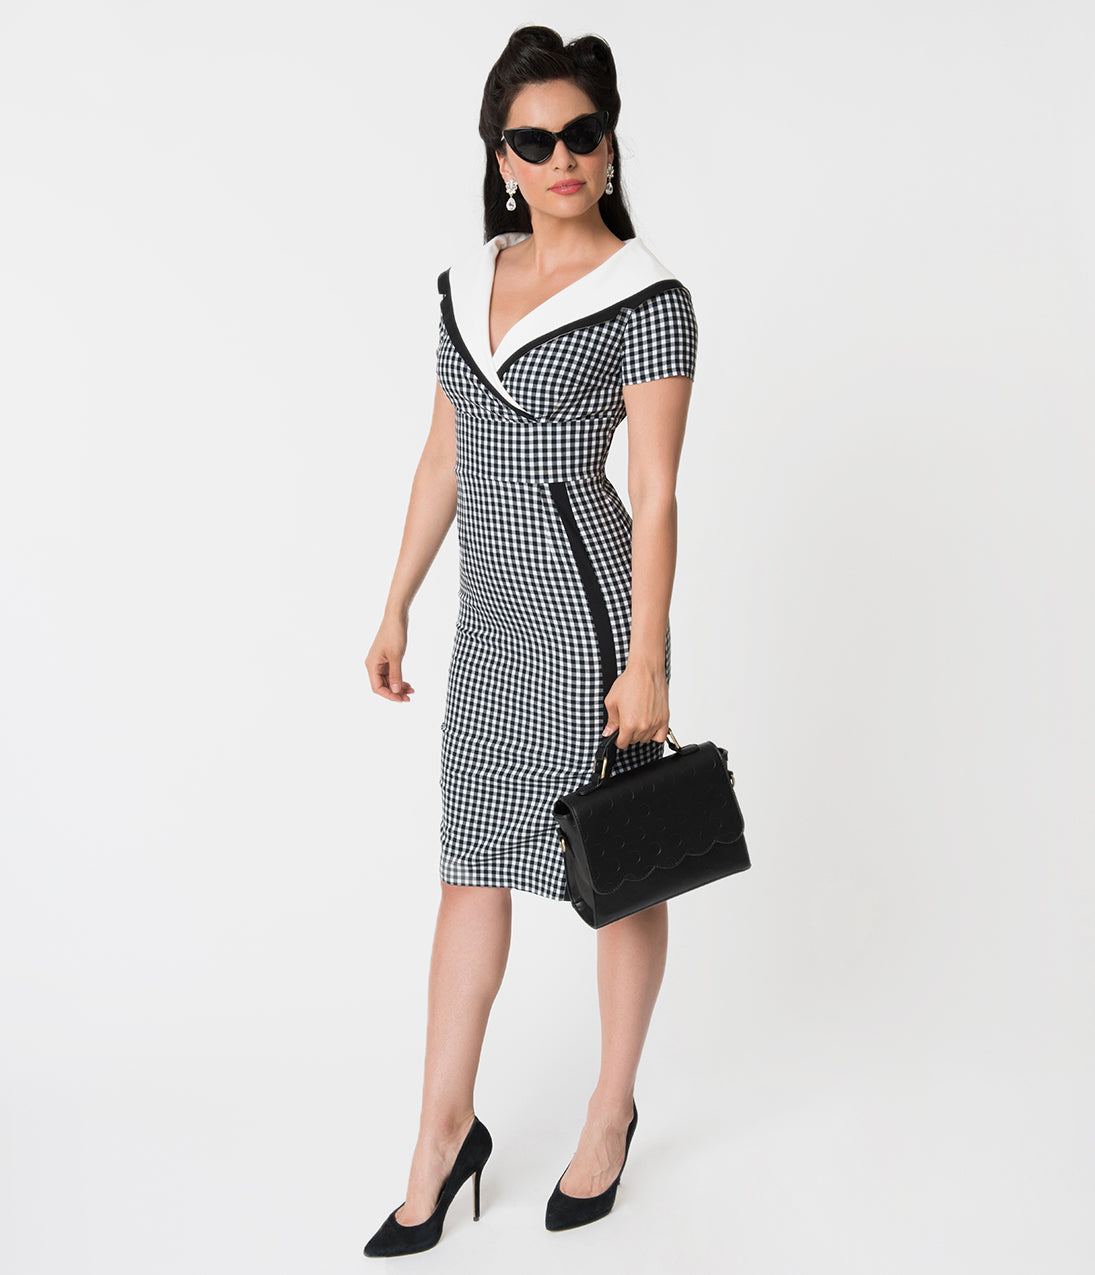 1960s Dresses | 60s Dresses Mod, Mini, Jakie O, Hippie Vintage Diva Black  White Gingham Short Sleeve Collared Greta Wiggle Dress $128.00 AT vintagedancer.com